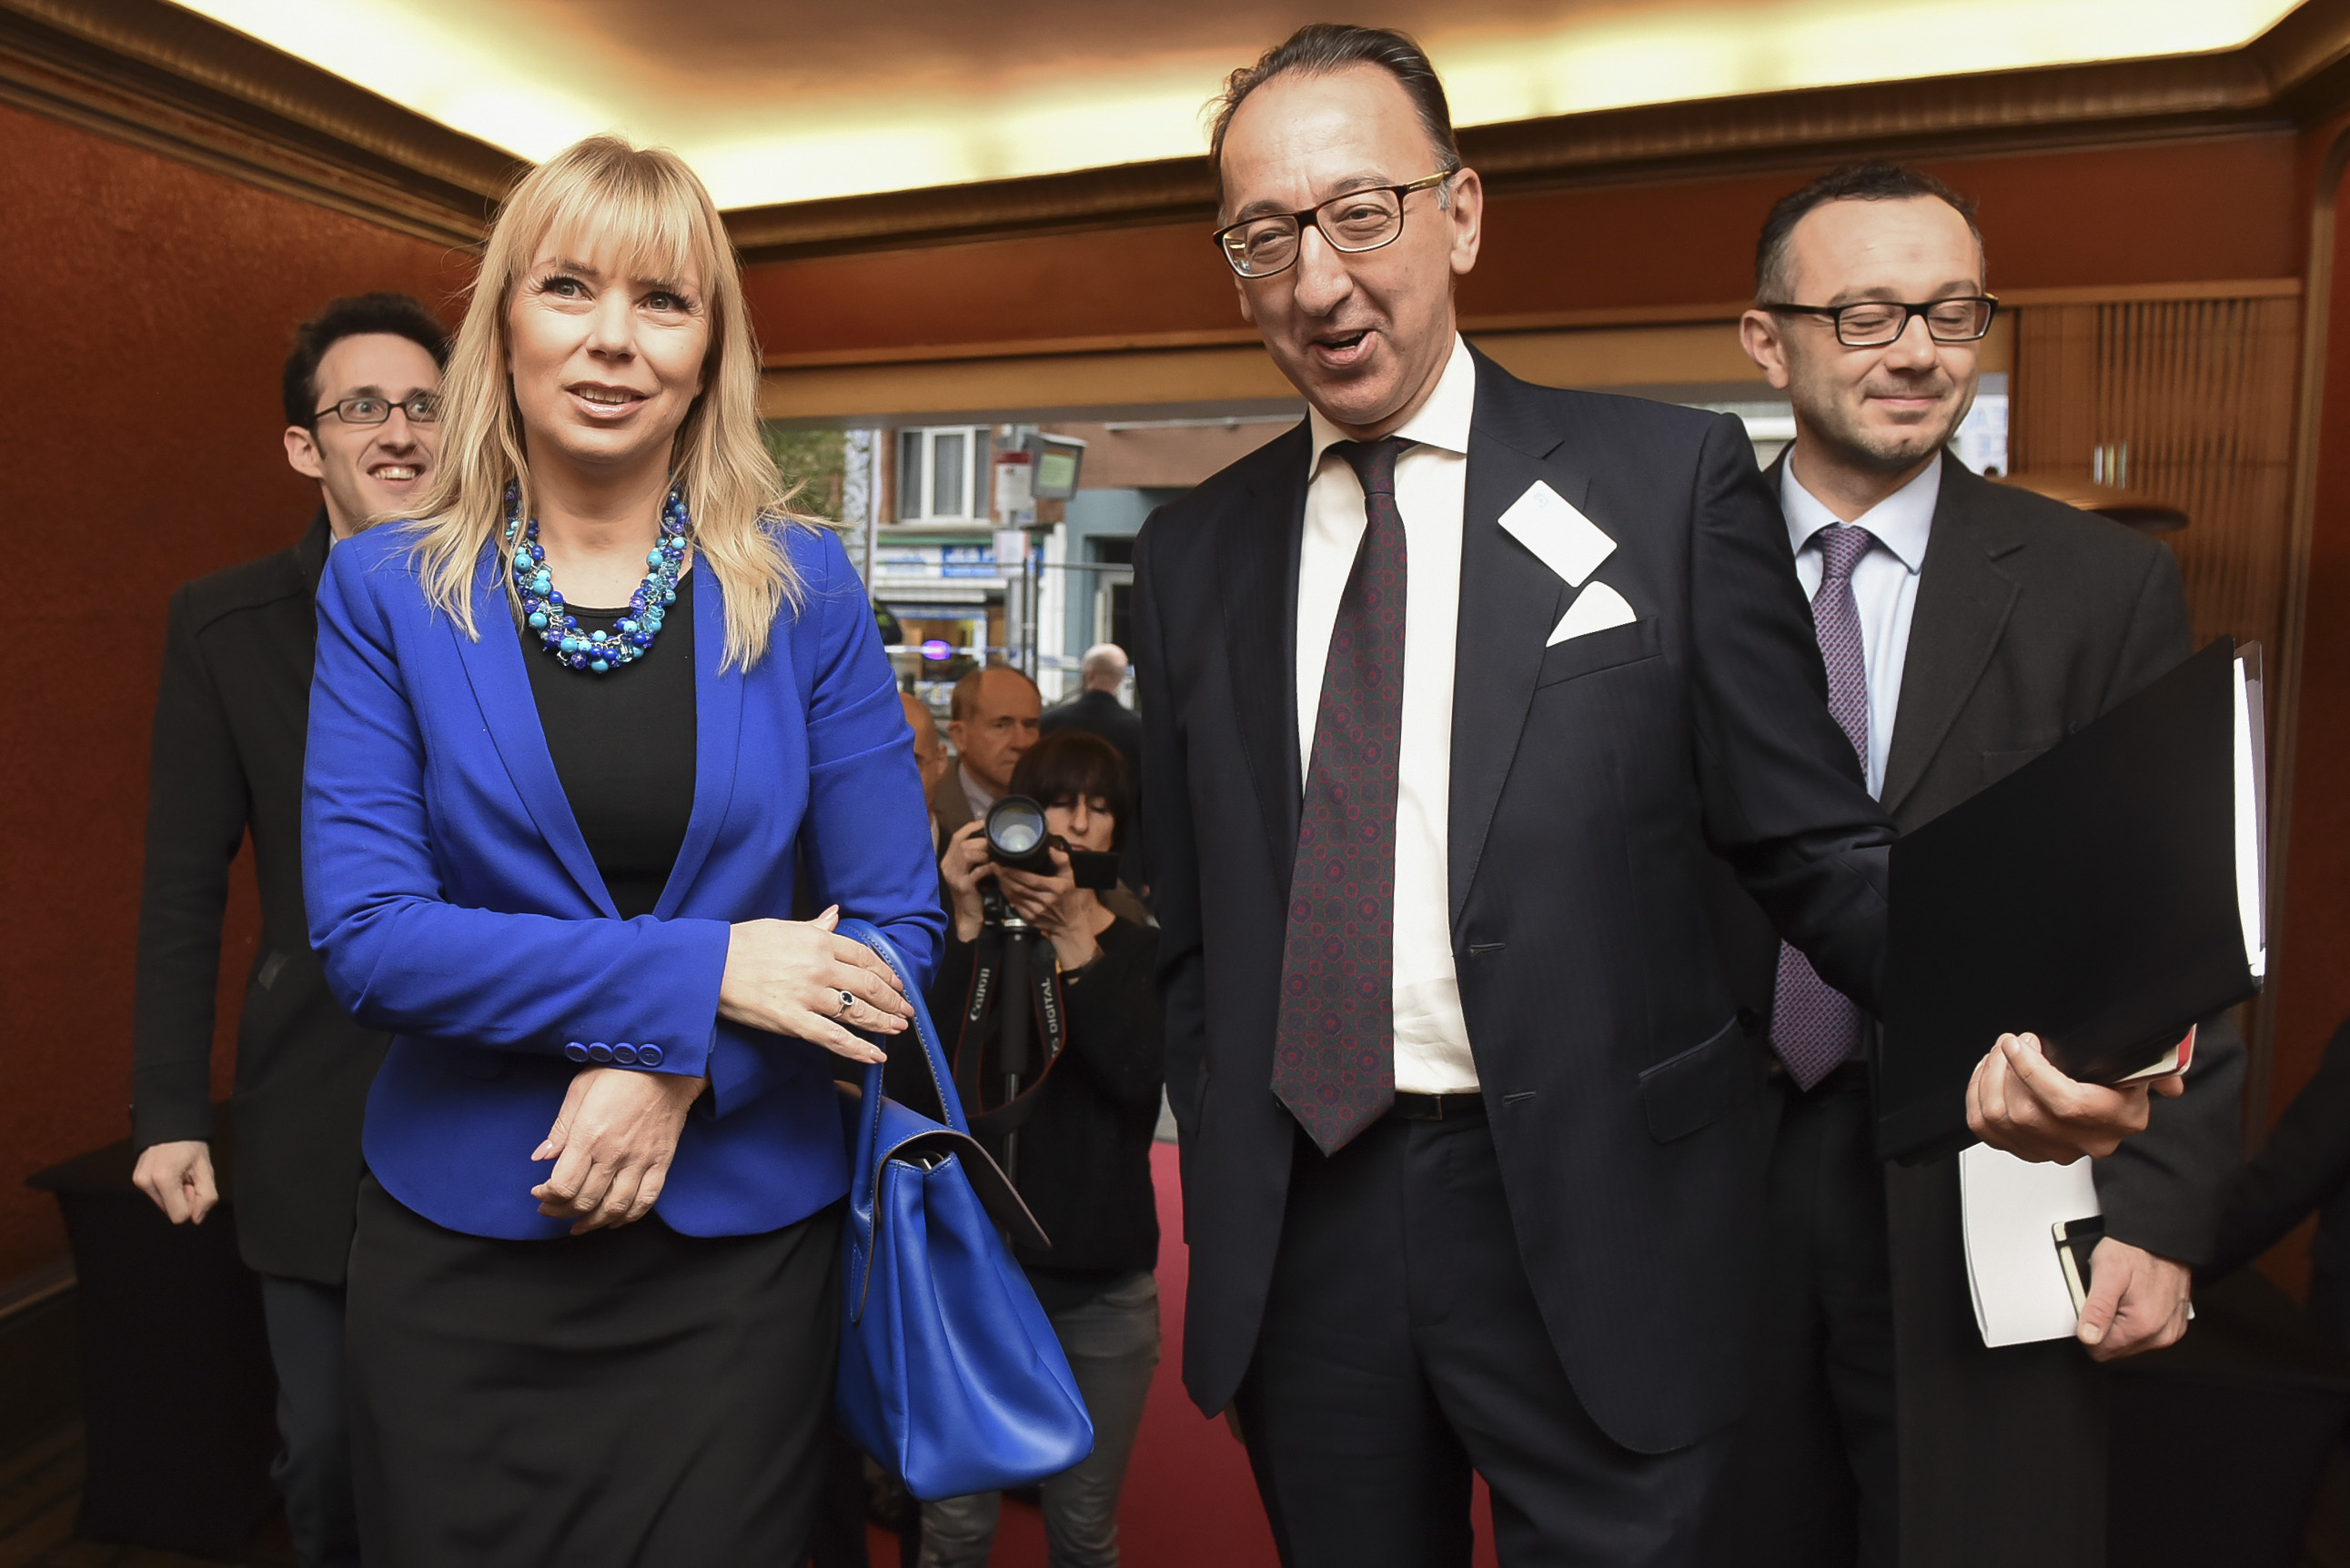 Jorge Domecq, Chief Executive of the EDA, and Elżbieta Bieńkow